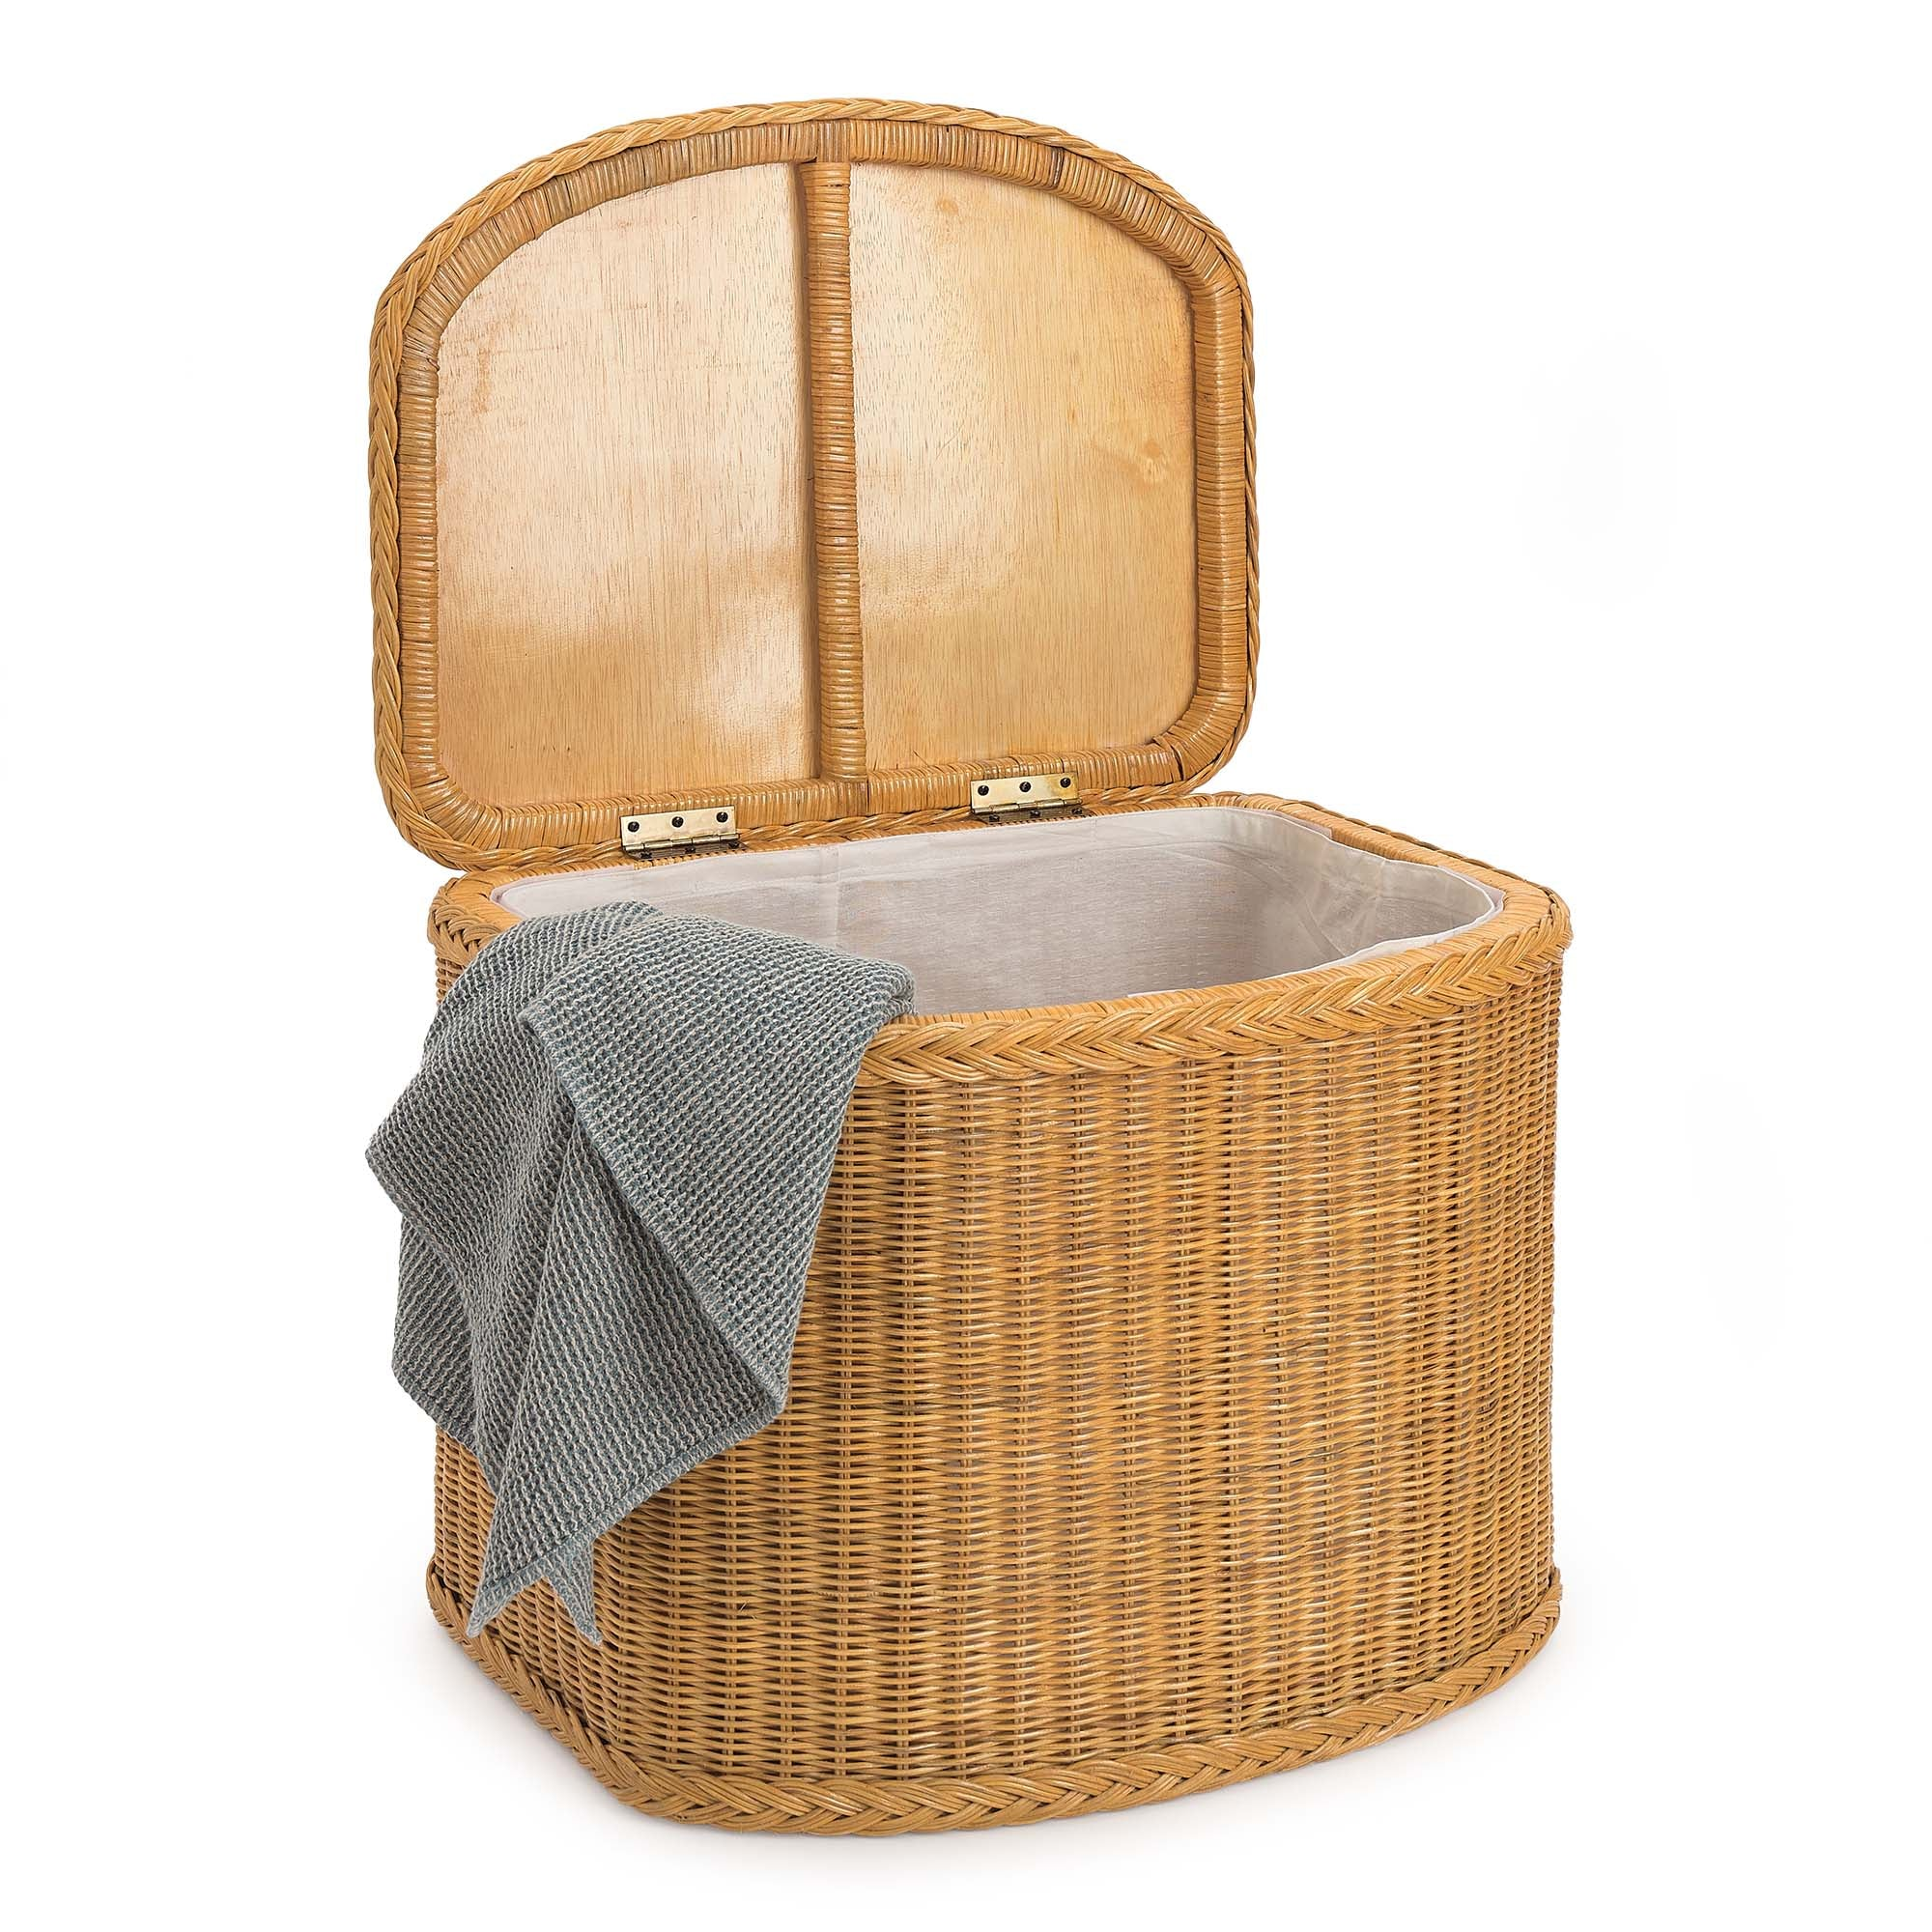 Java Laundry Basket in honey | Home & Living inspiration | URBANARA